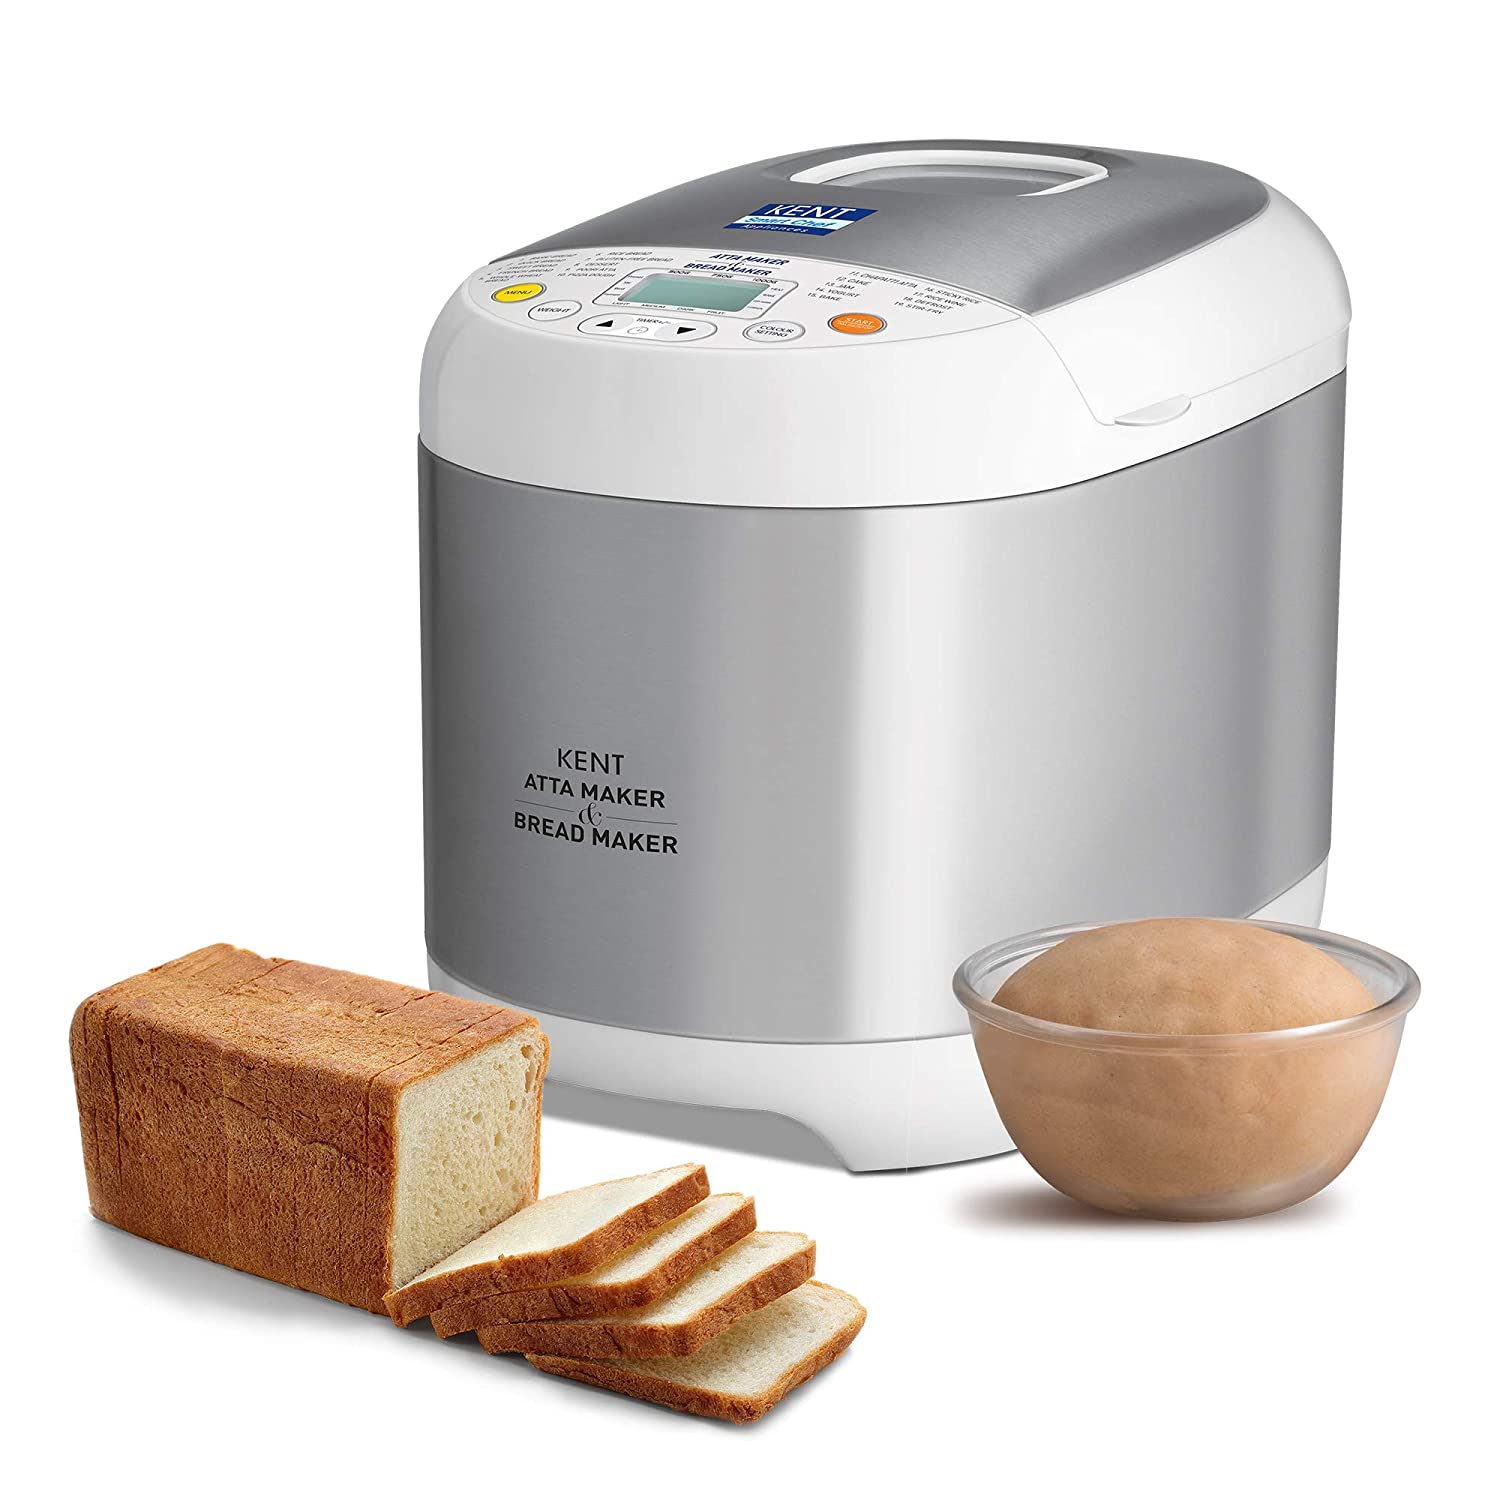 KENT - 16010 Atta and Bread Maker